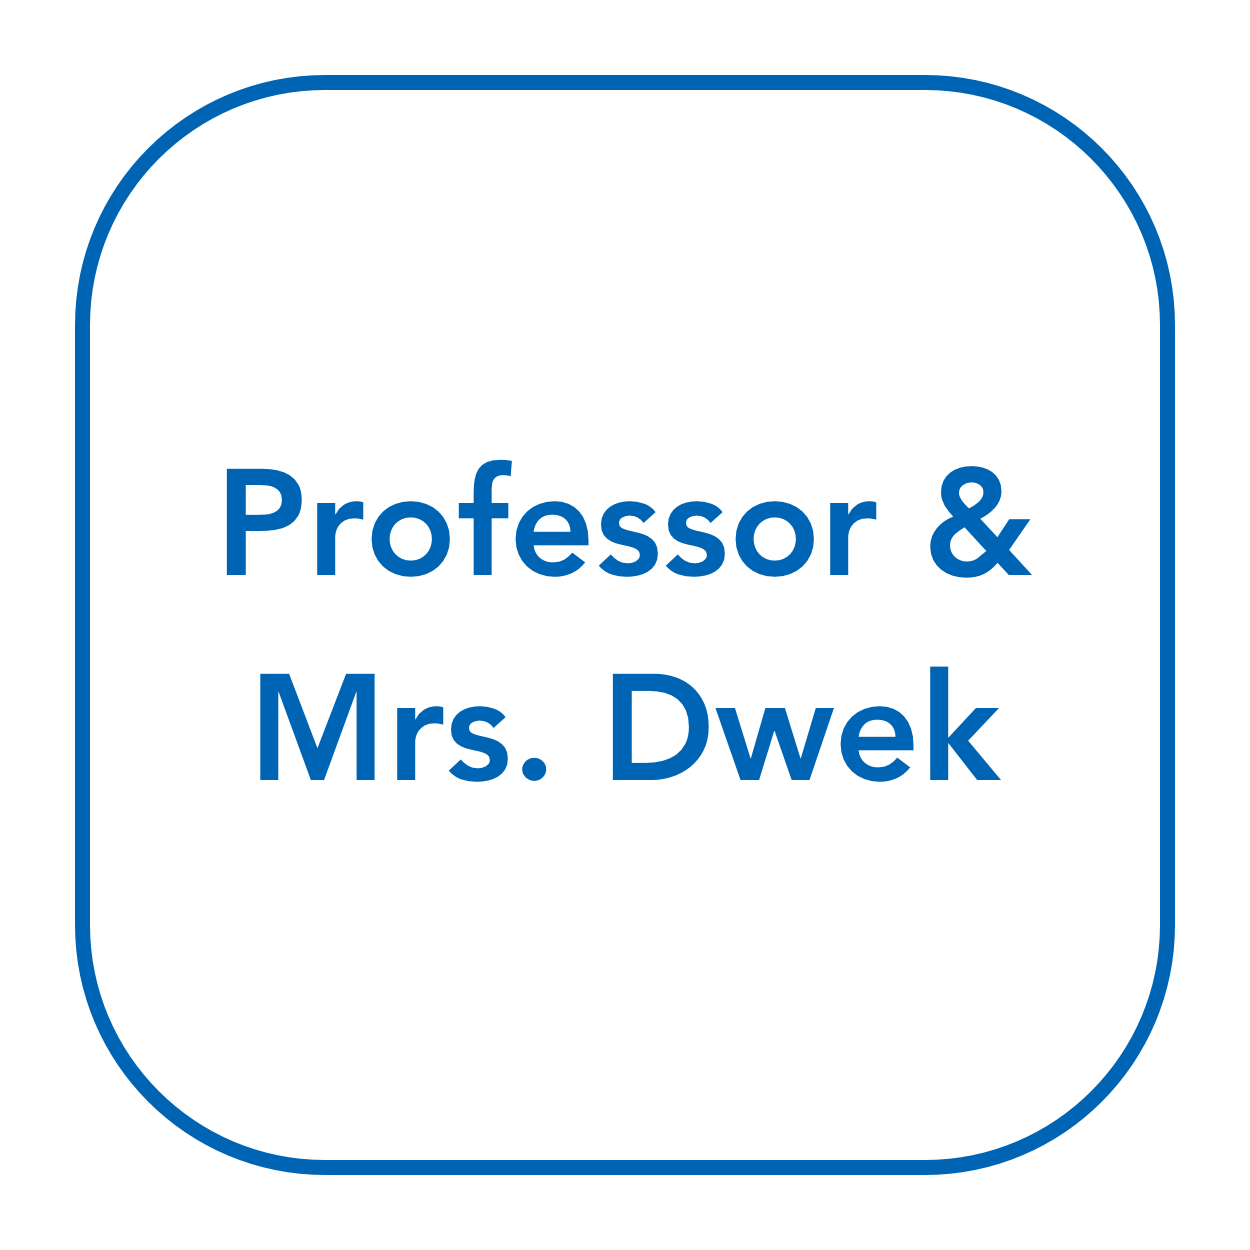 Professor & Mrs. Dwek